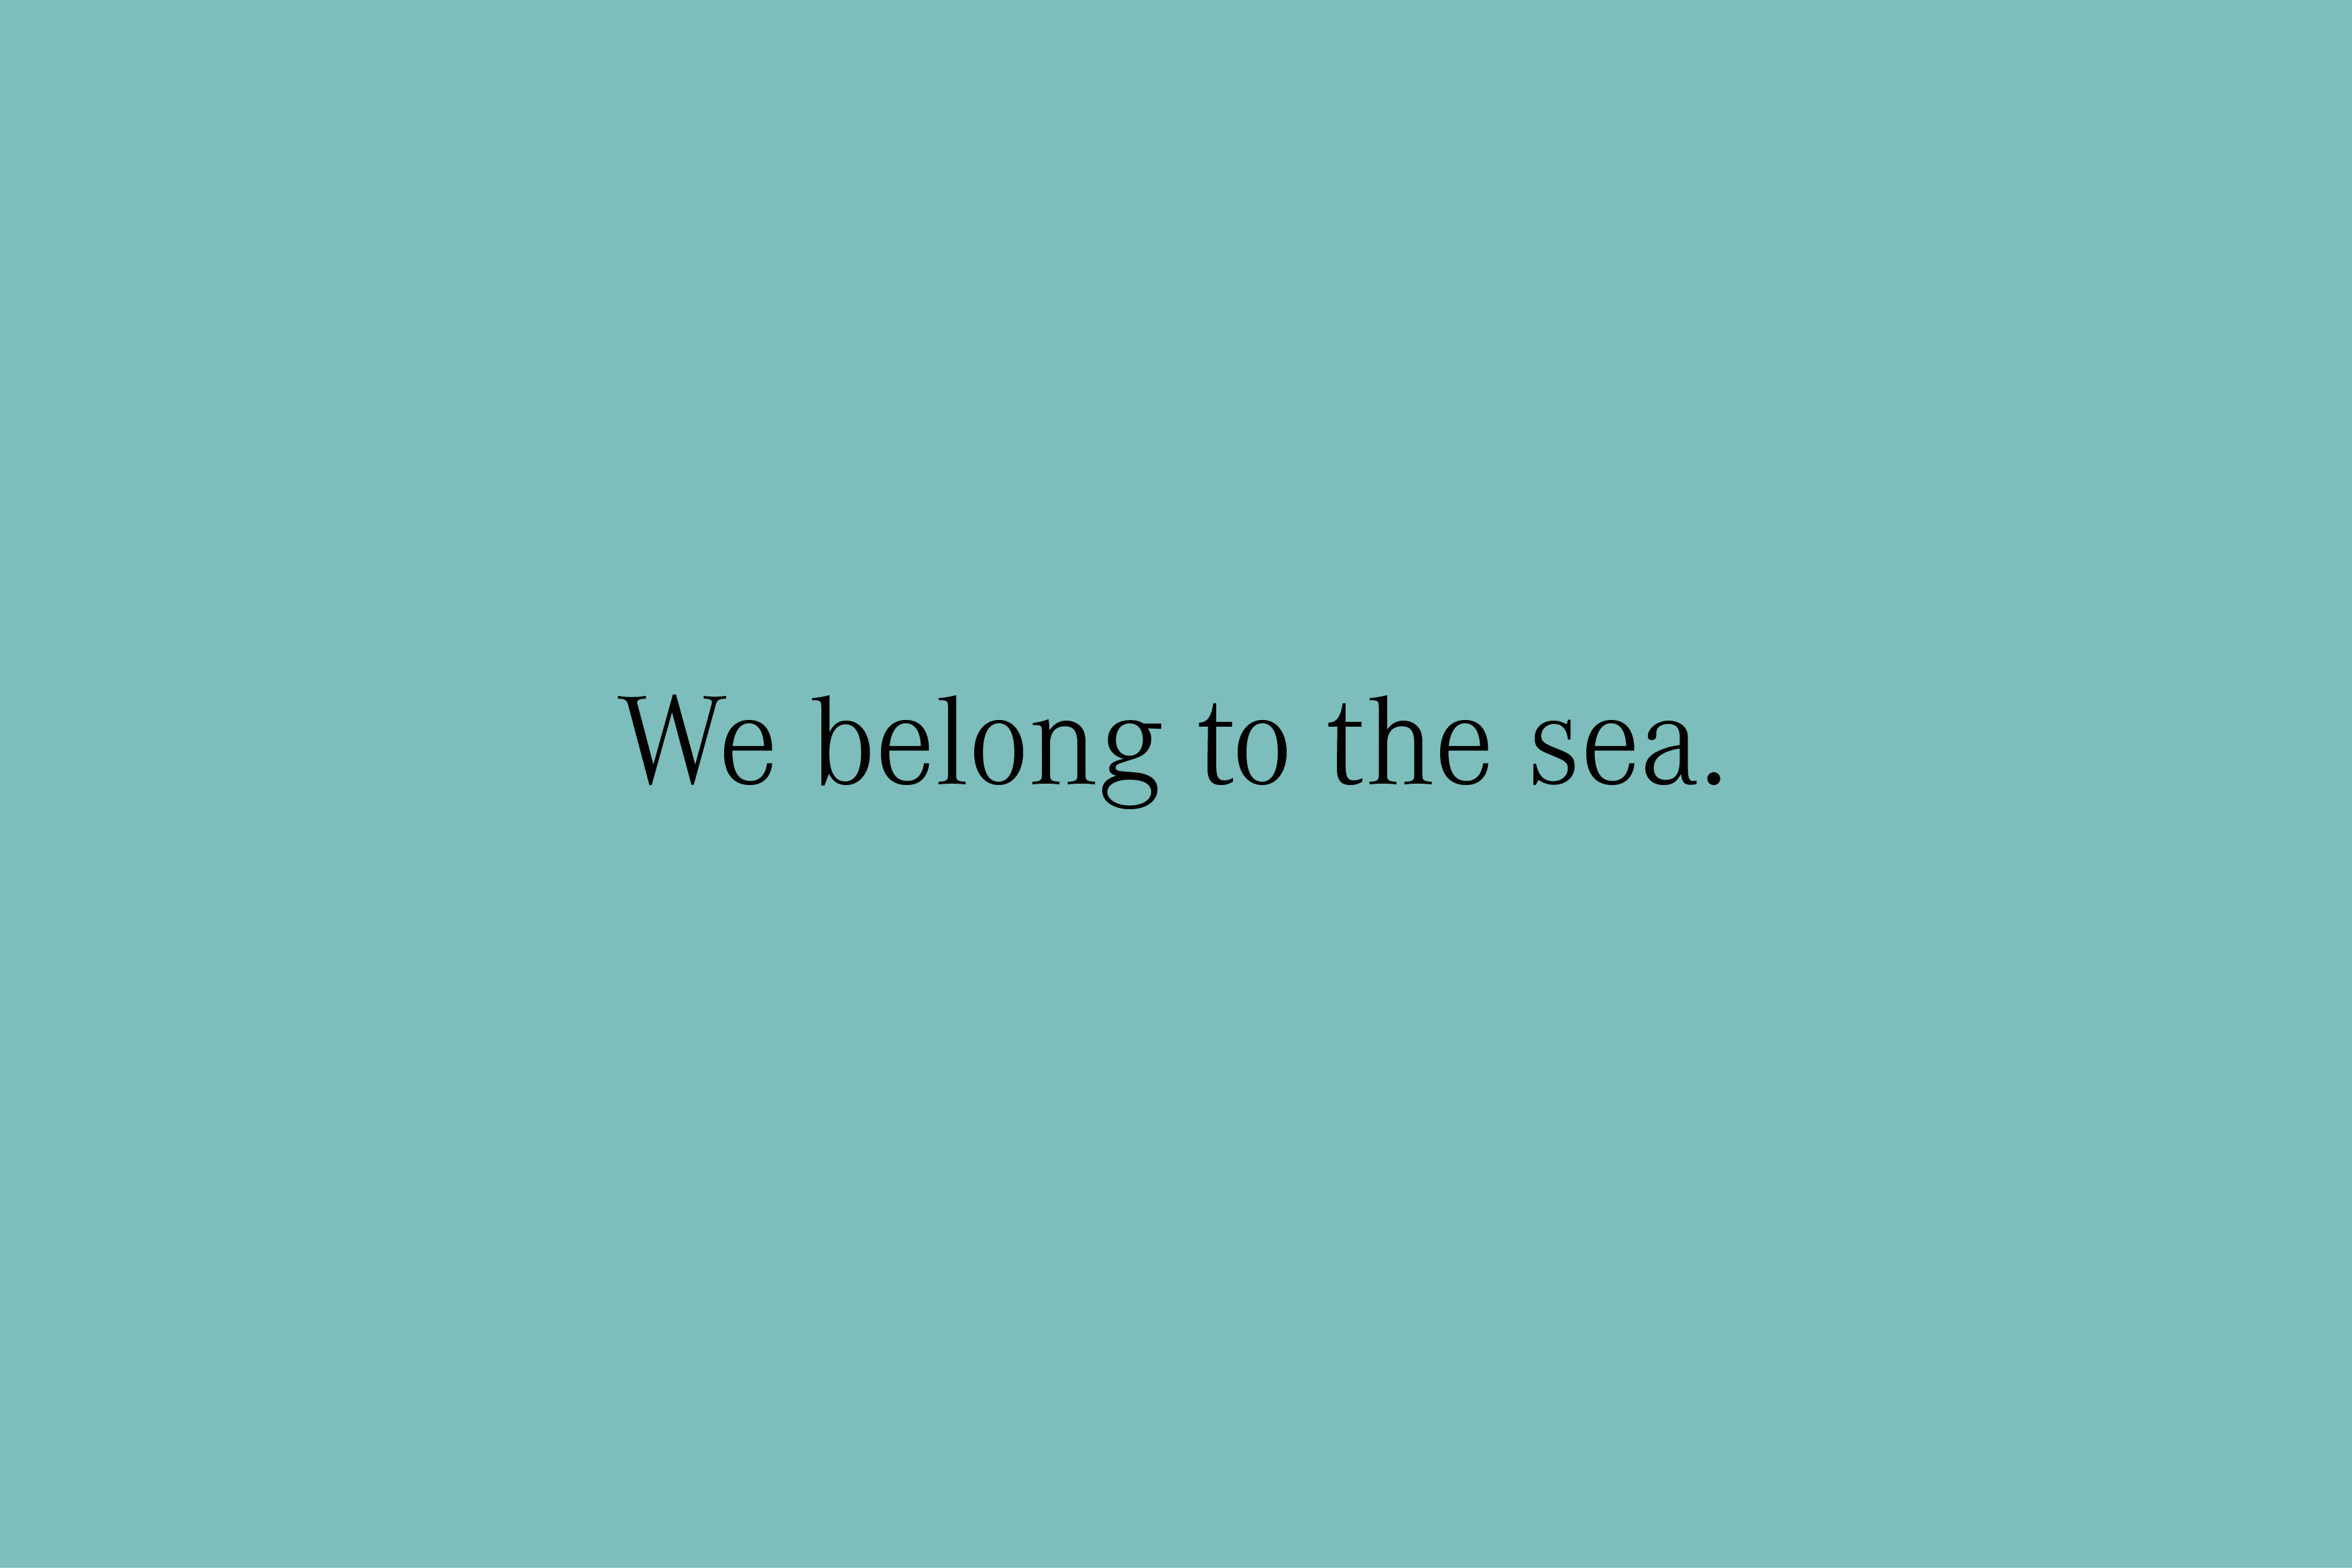 YVONNE RUNDIO BIRU BIRU We belong to the sea